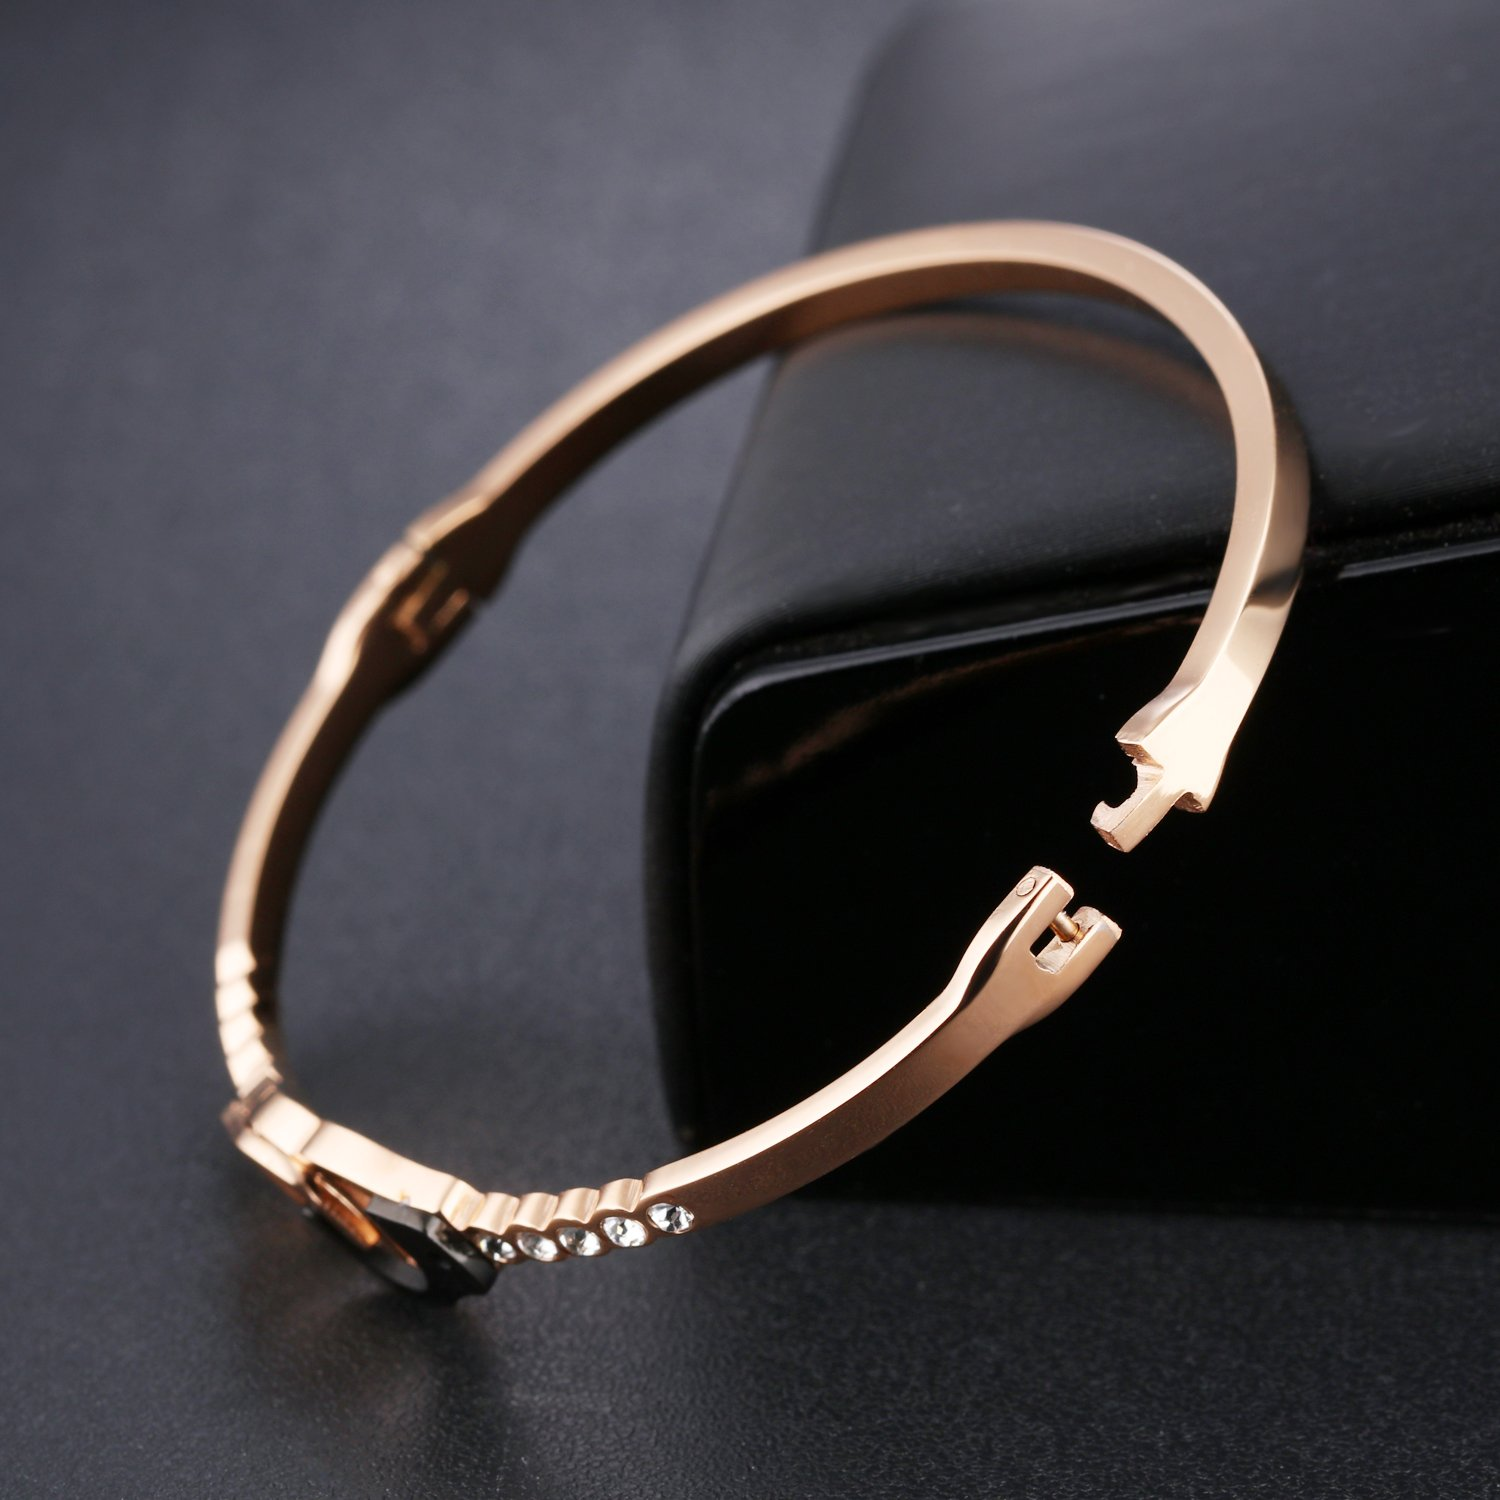 Keybella Bracelet Elegant Woman Girls Stainless Steel Handcuffs Lucky Gift